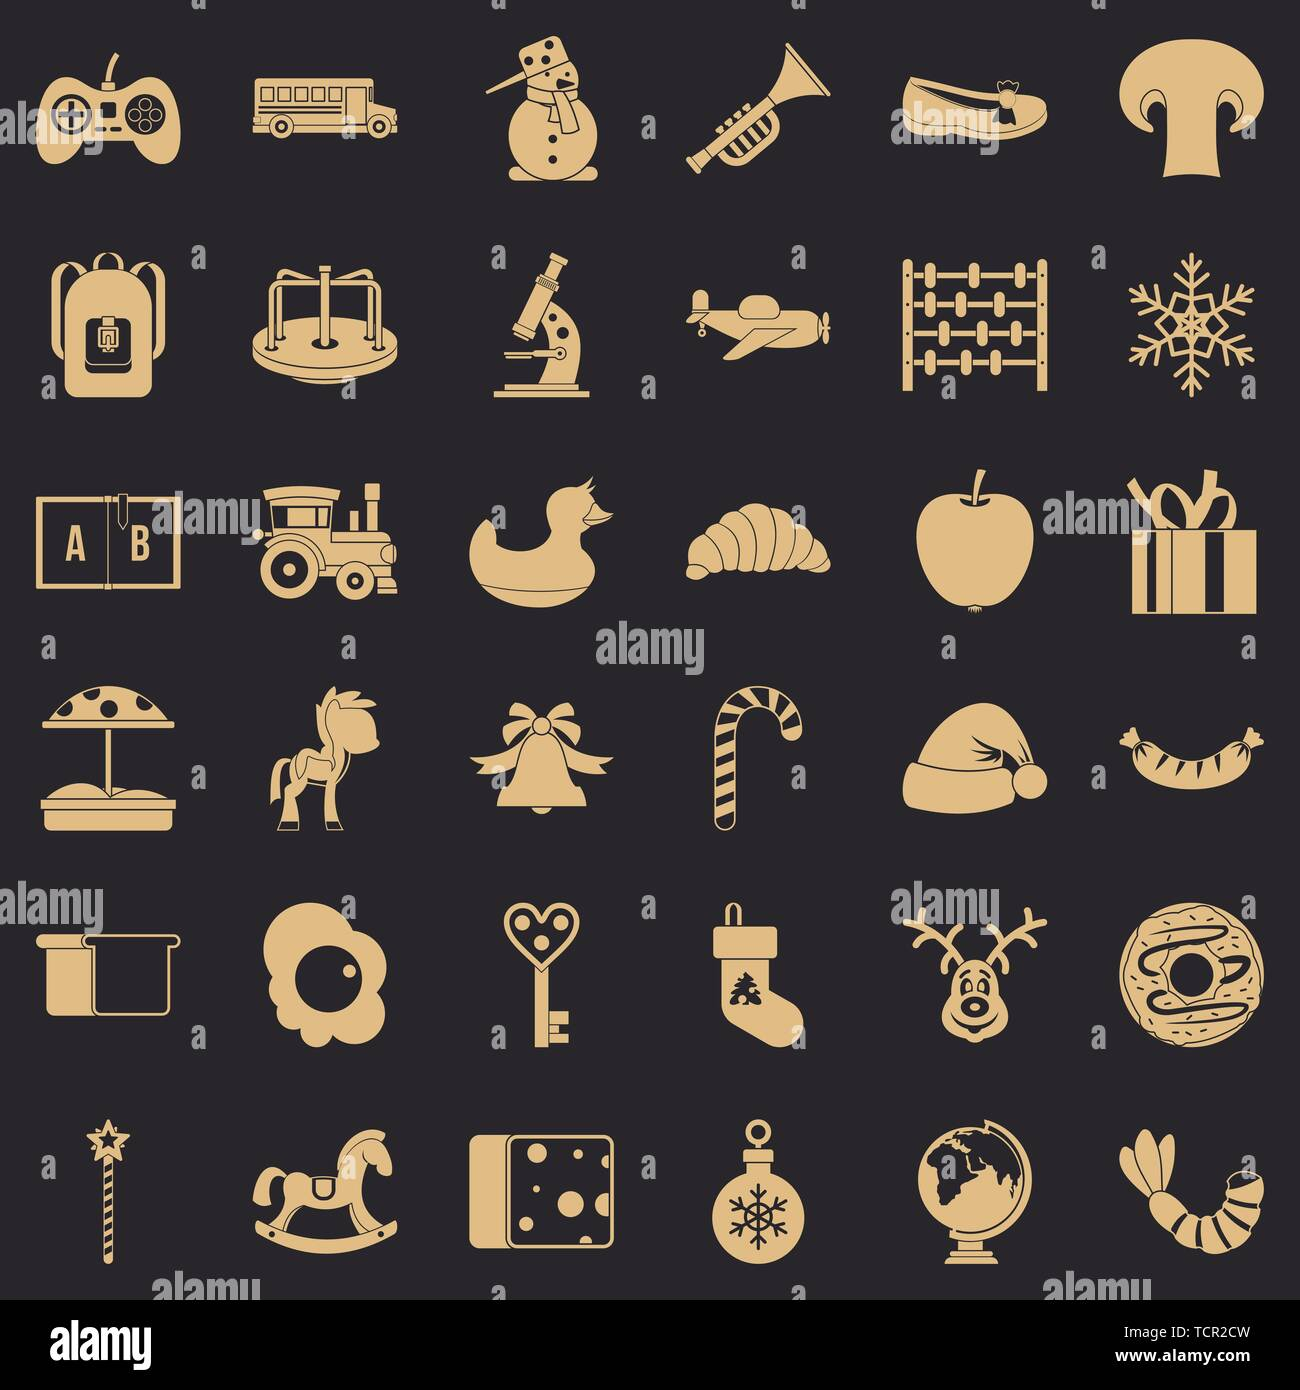 Infant school icons set, simple style - Stock Image